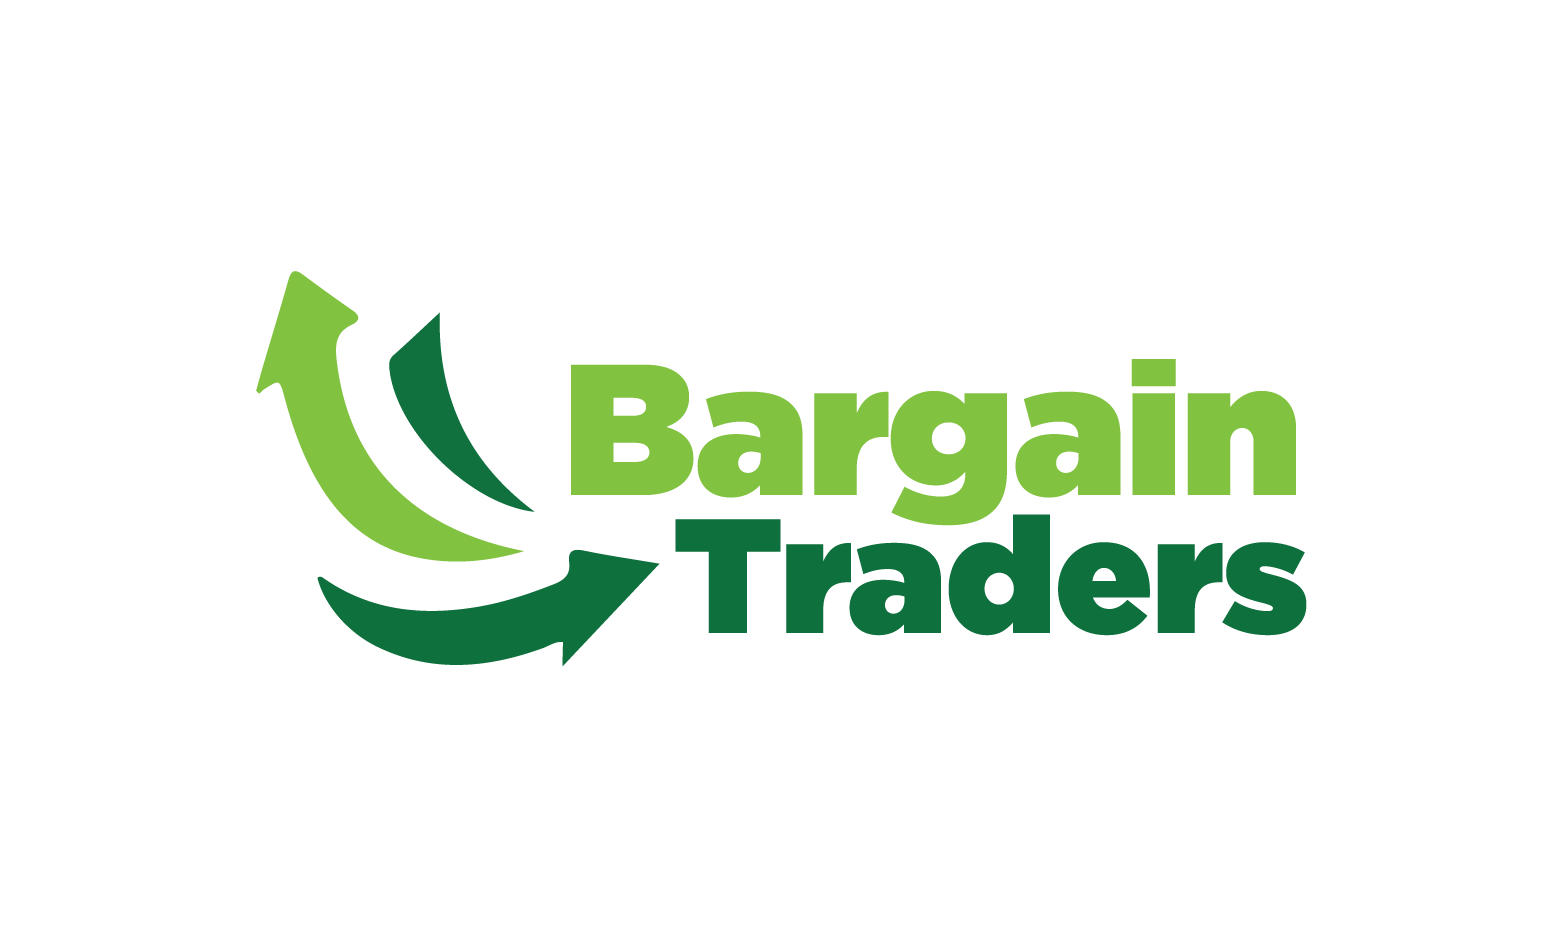 BargainTraders.com